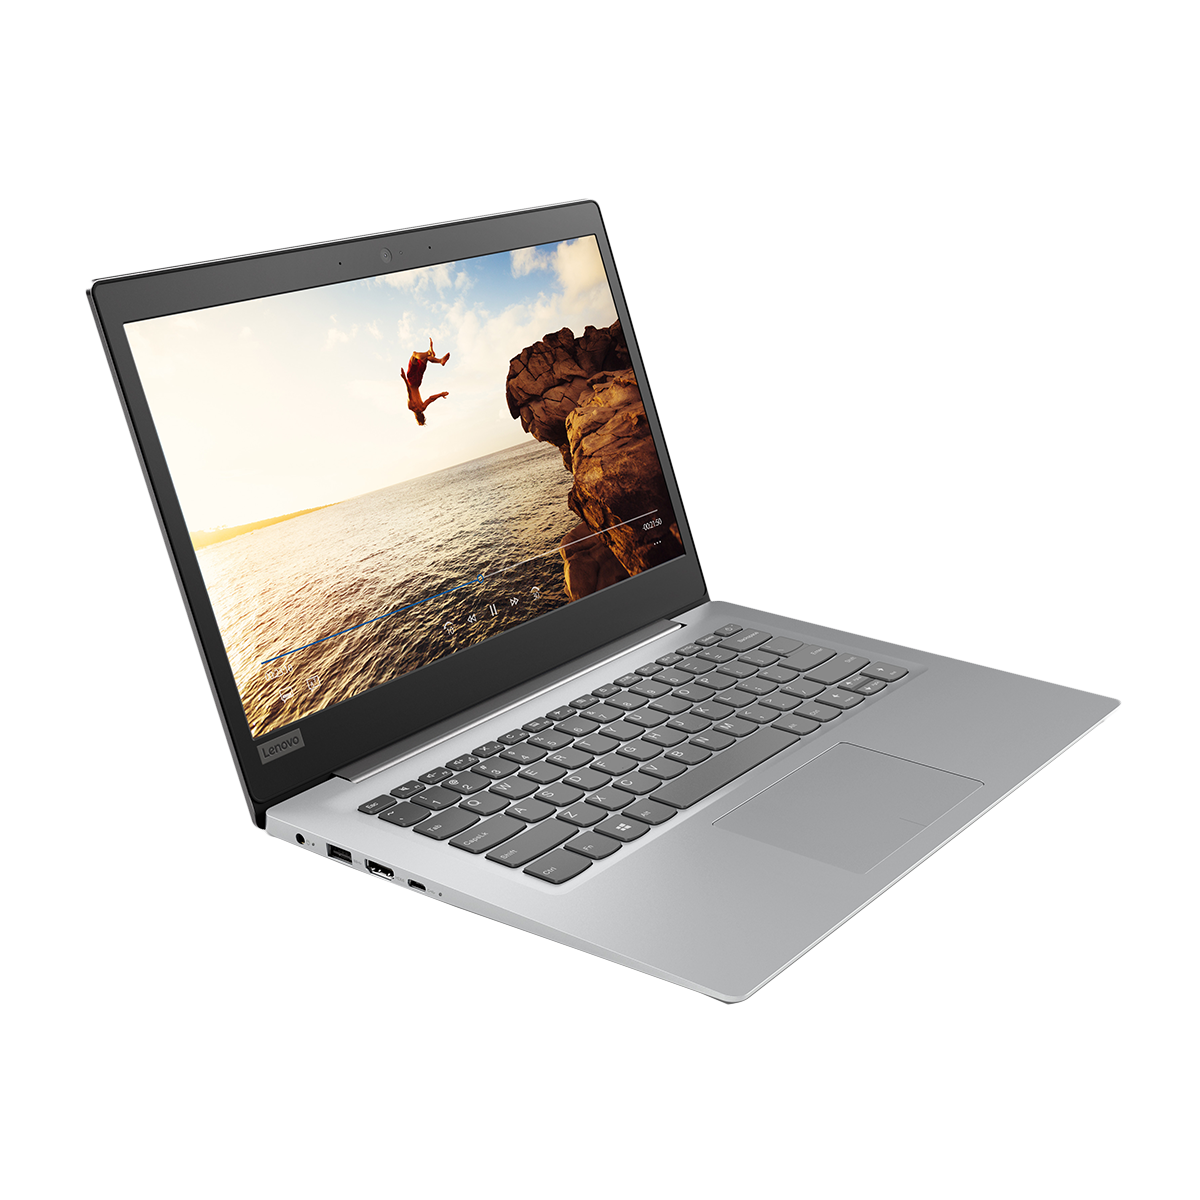 Lenovo IdeaPad 120s-14*Style 4GB/64GB W10 MineralGrey [Outlet]